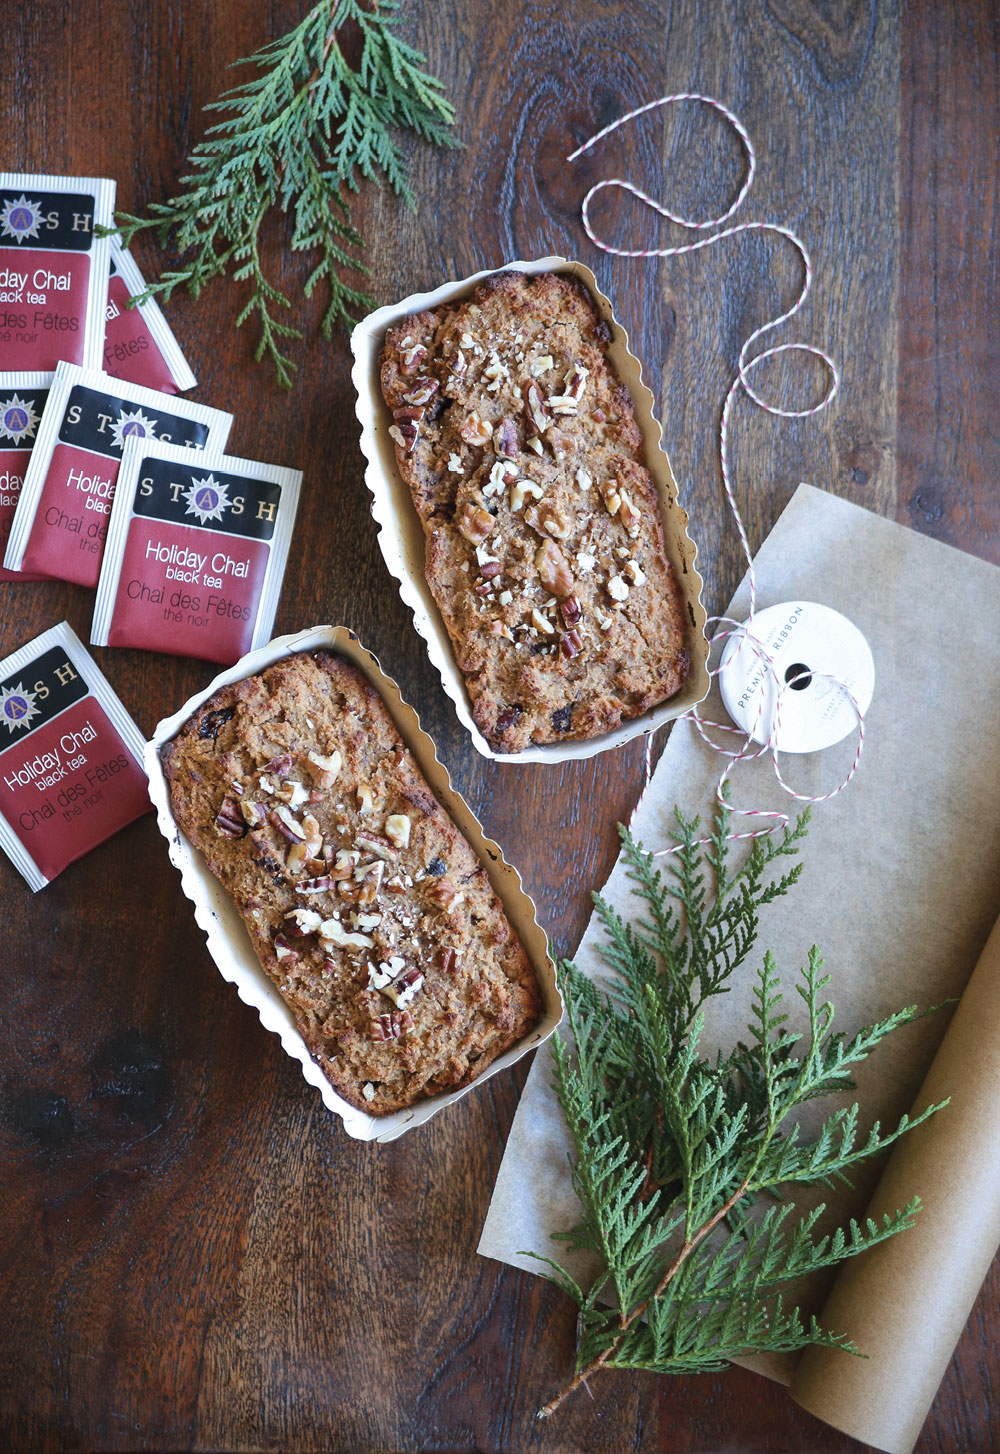 holiday-chai-cranberry-nut-loaf-cake-pure-ella-leche5